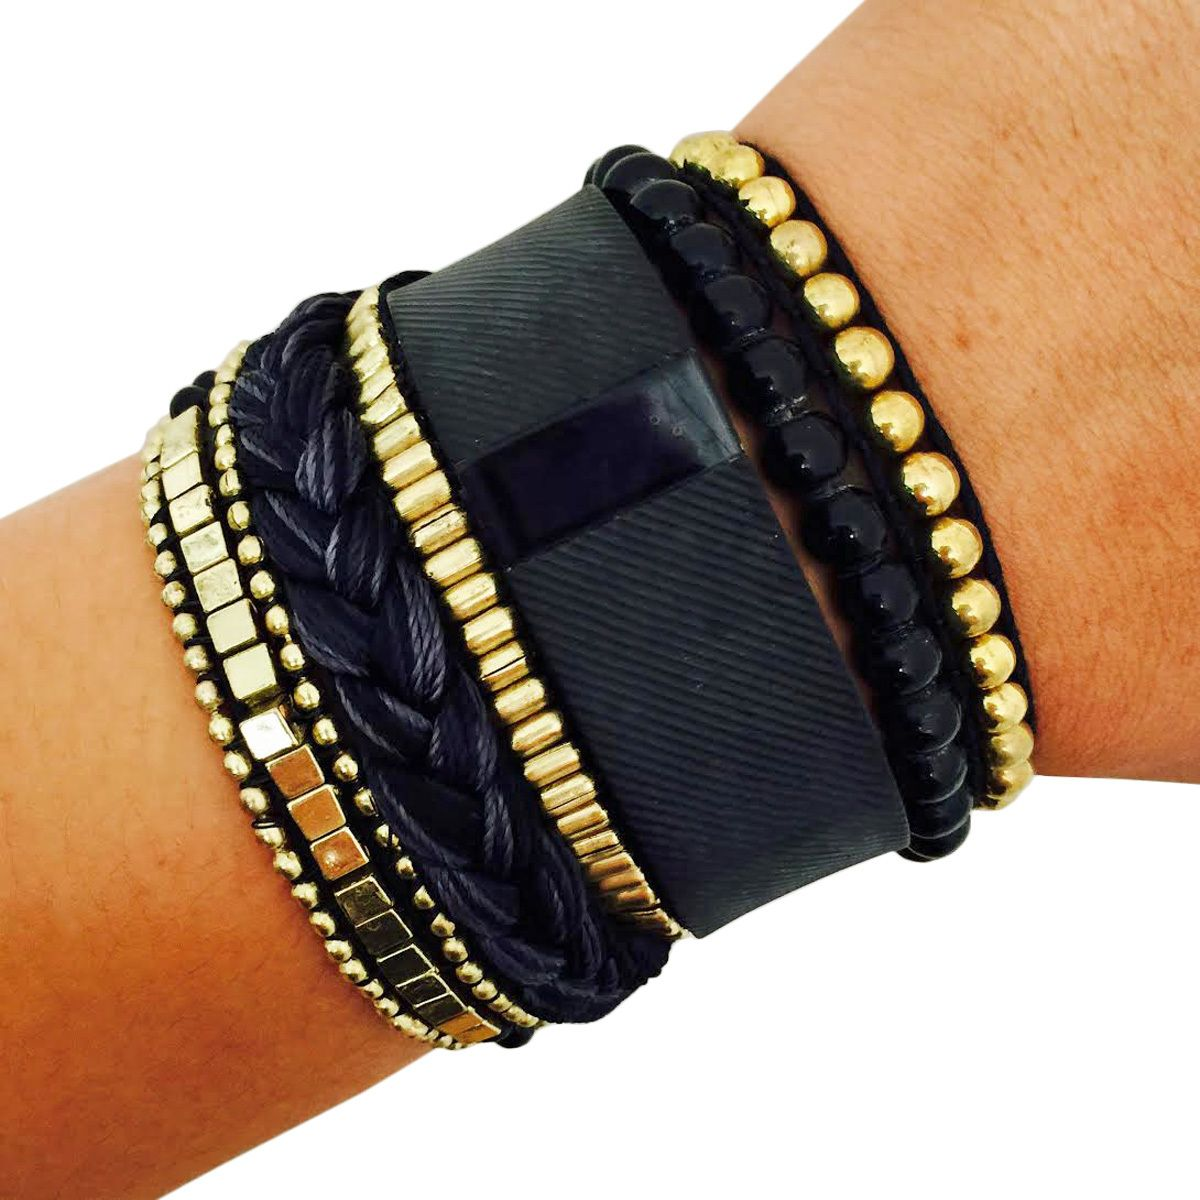 Fitbit bracelet to accessorize the fitbit charge or charge hr the